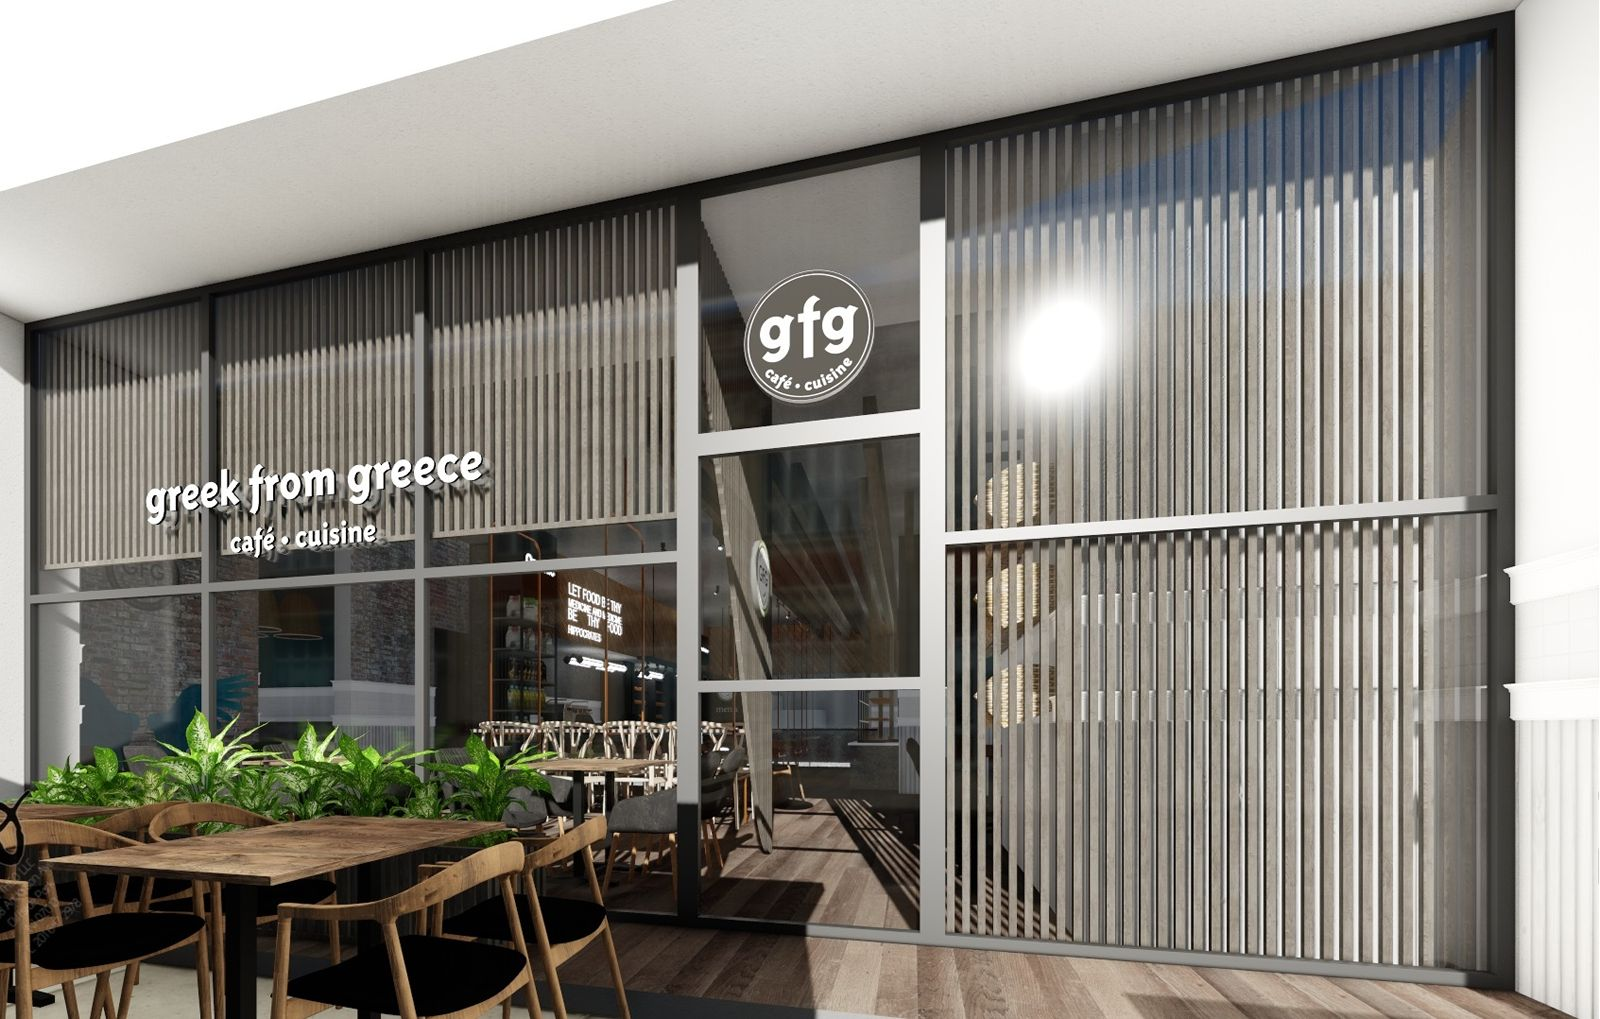 Authentic Greek Bakery Concept GFG Café Cuisine Opens Two Locations in the Pennsylvania Area